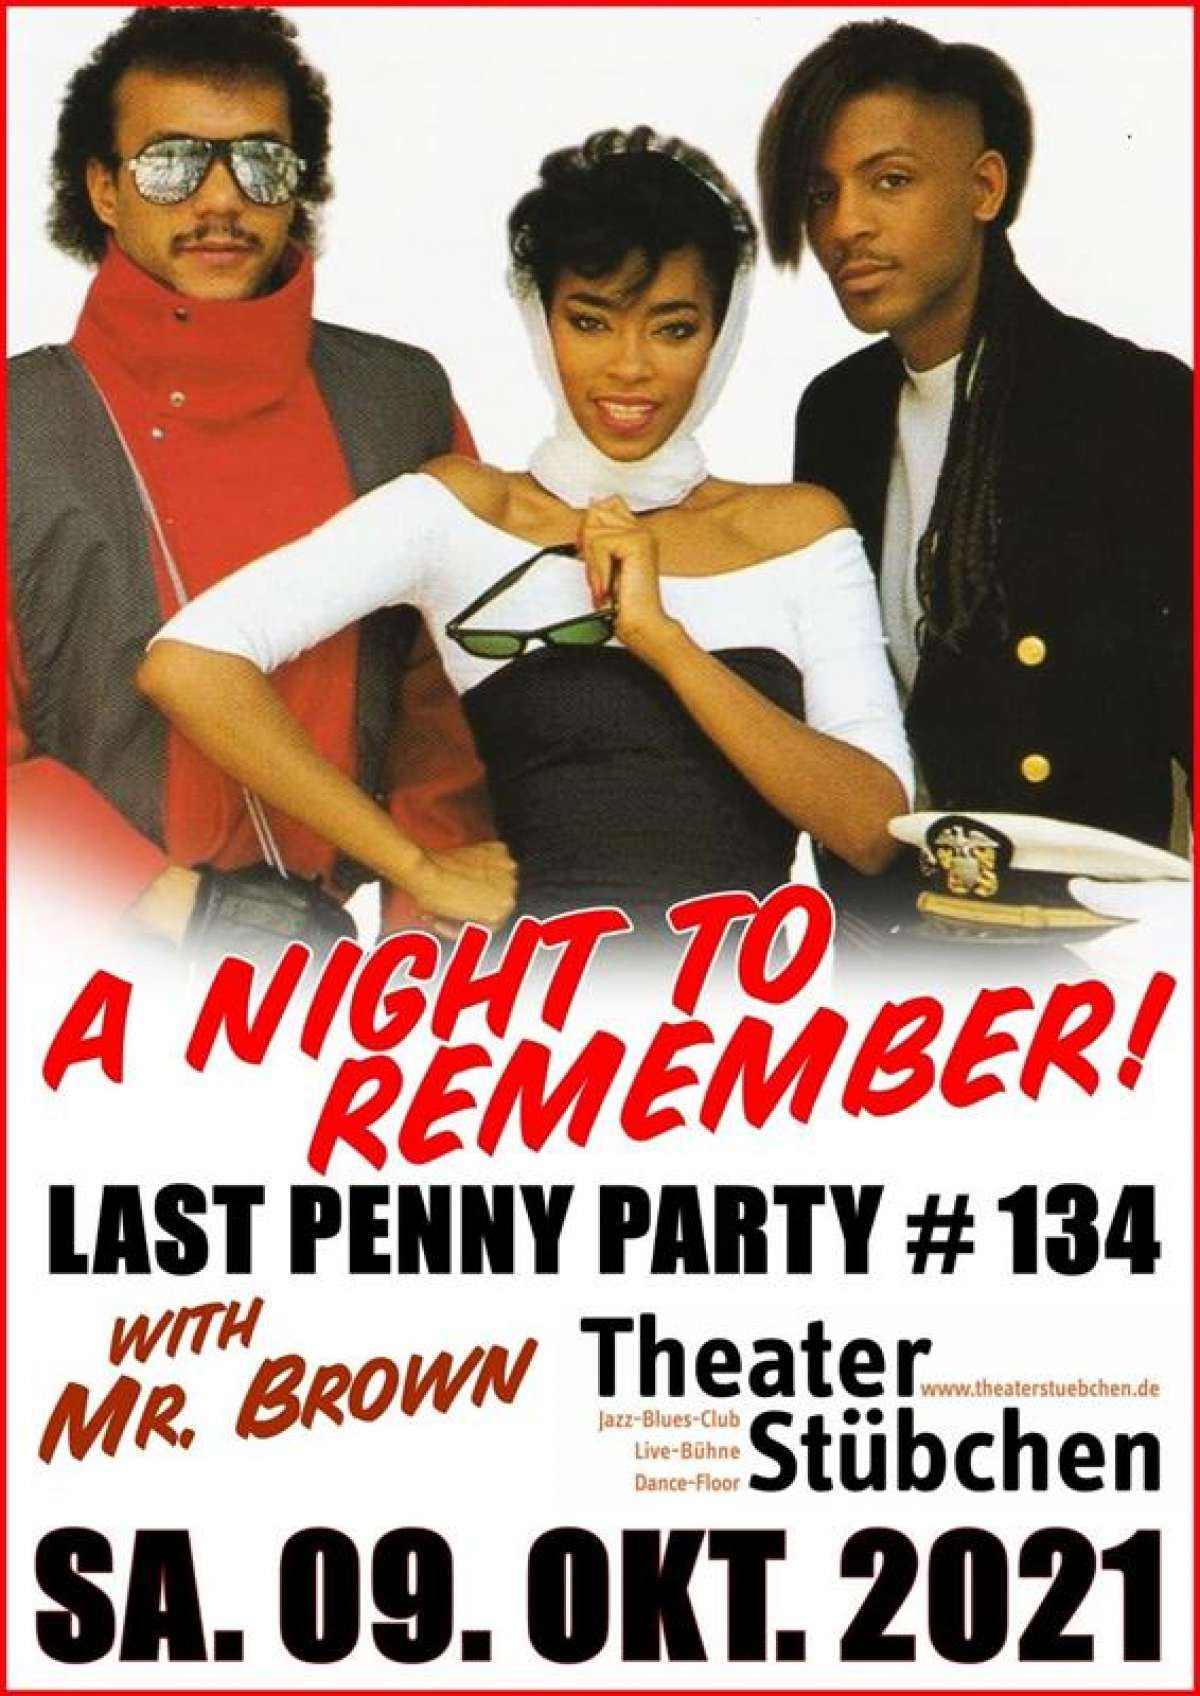 Last Penny Party